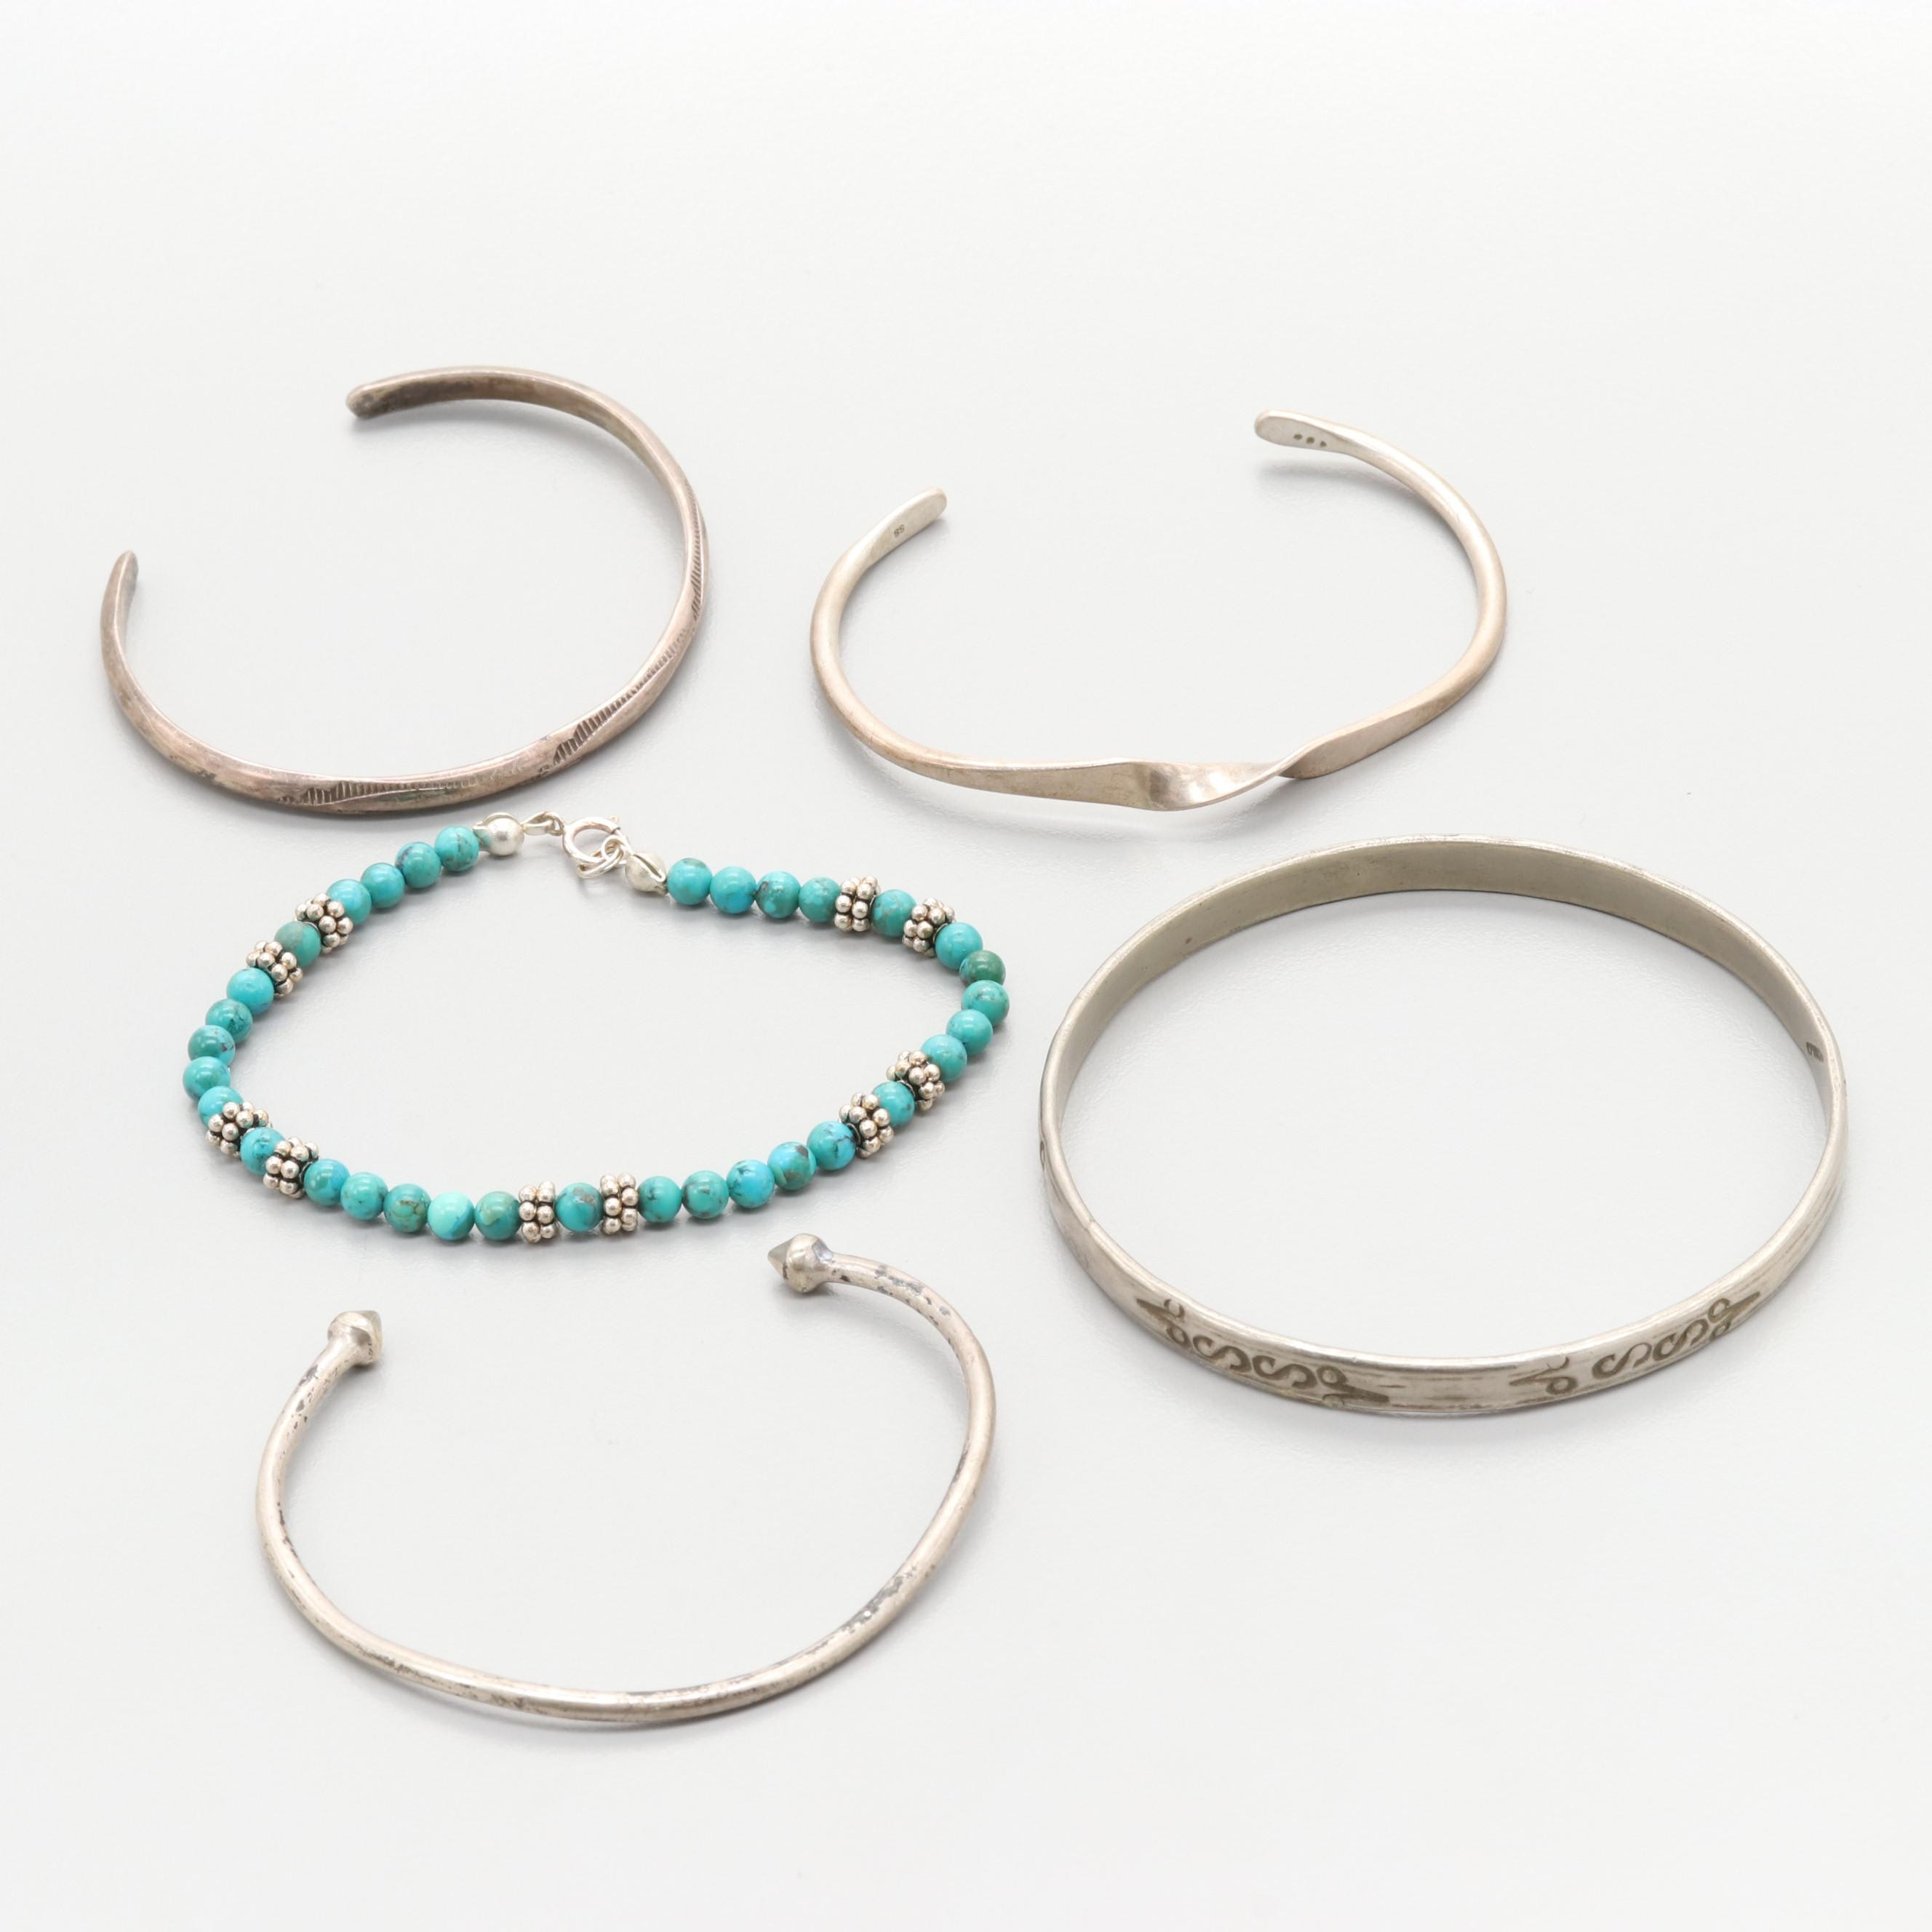 Sterling Silver and Silver Tone Imitation Turquoise Bracelets